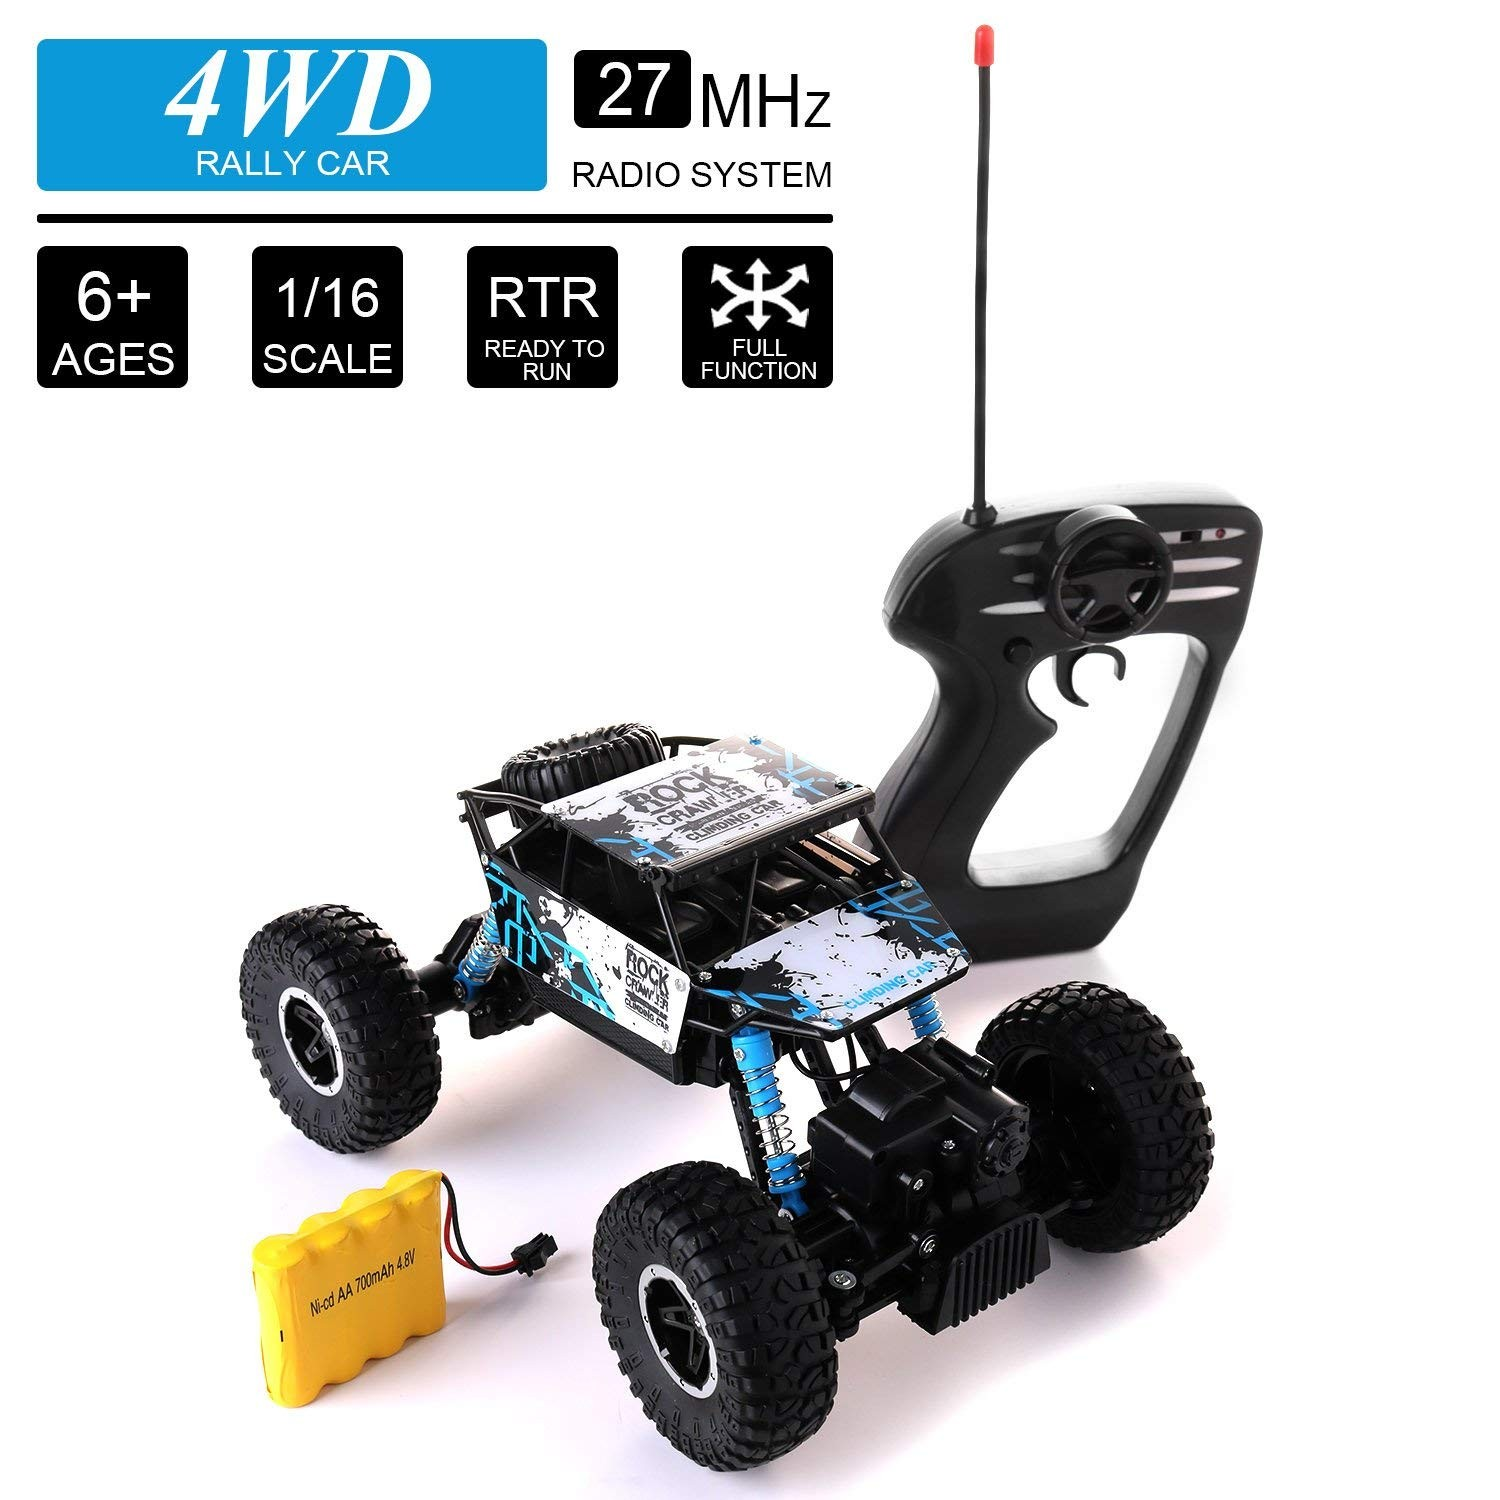 Remote Control Car Diagram Amazon Glantop 27mhz 4wd Rally Car 4 Wheel Drive Rock Crawler 1 Of Remote Control Car Diagram